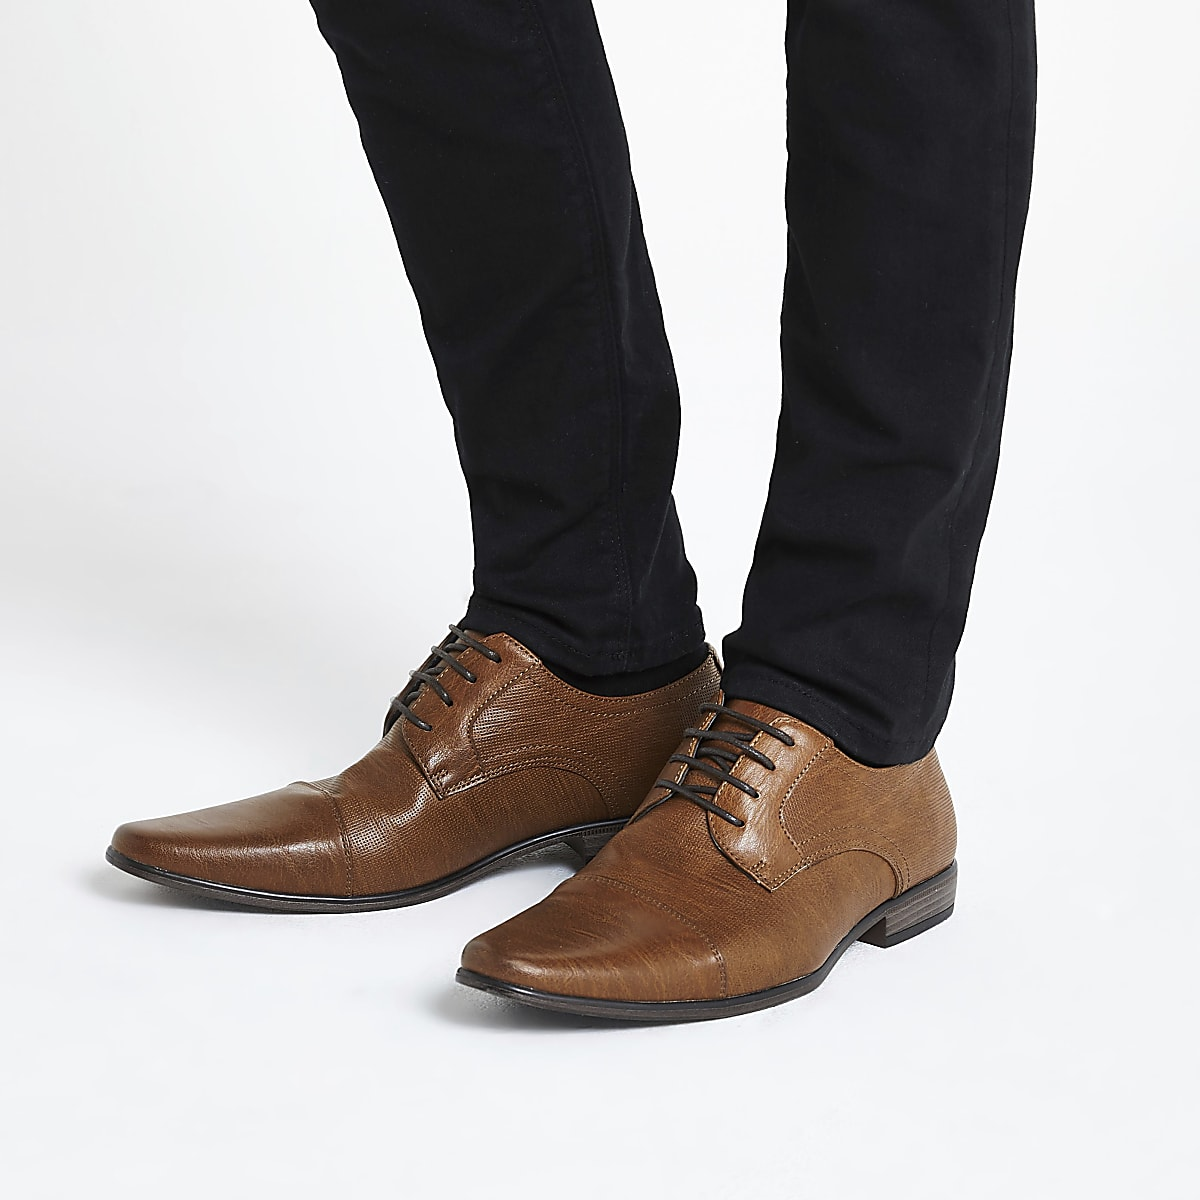 Brown embossed lace-up derby shoes